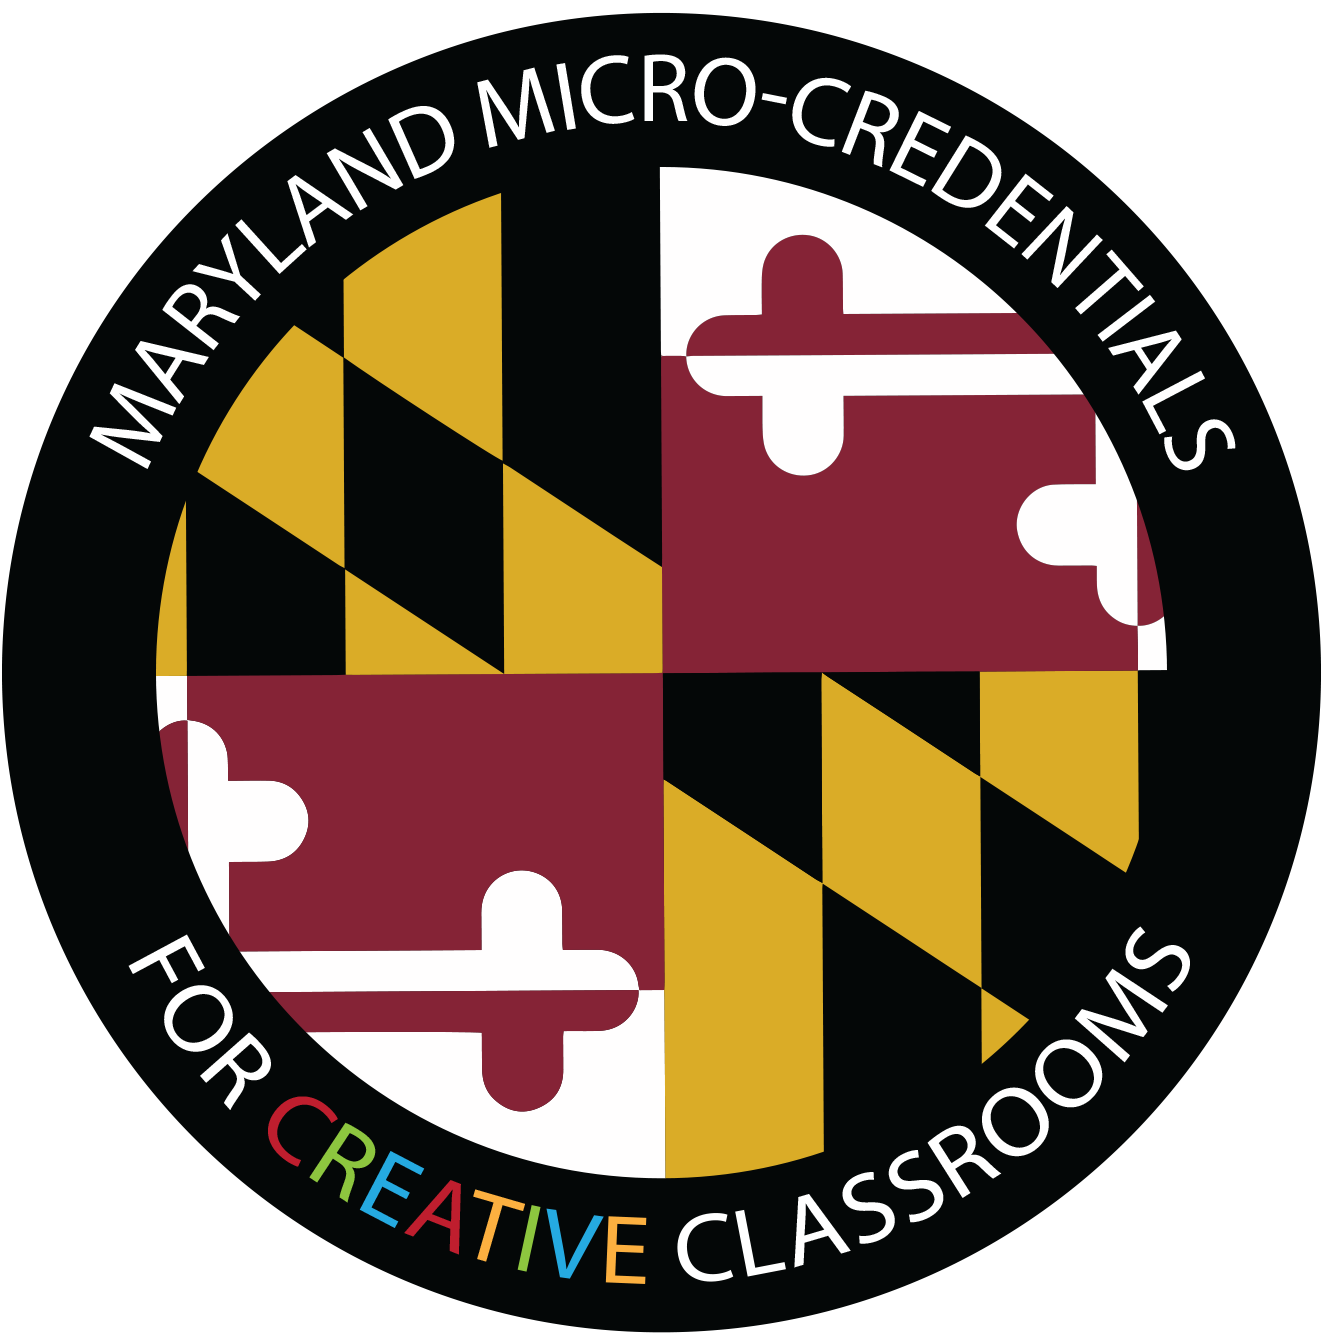 m cred logo.png